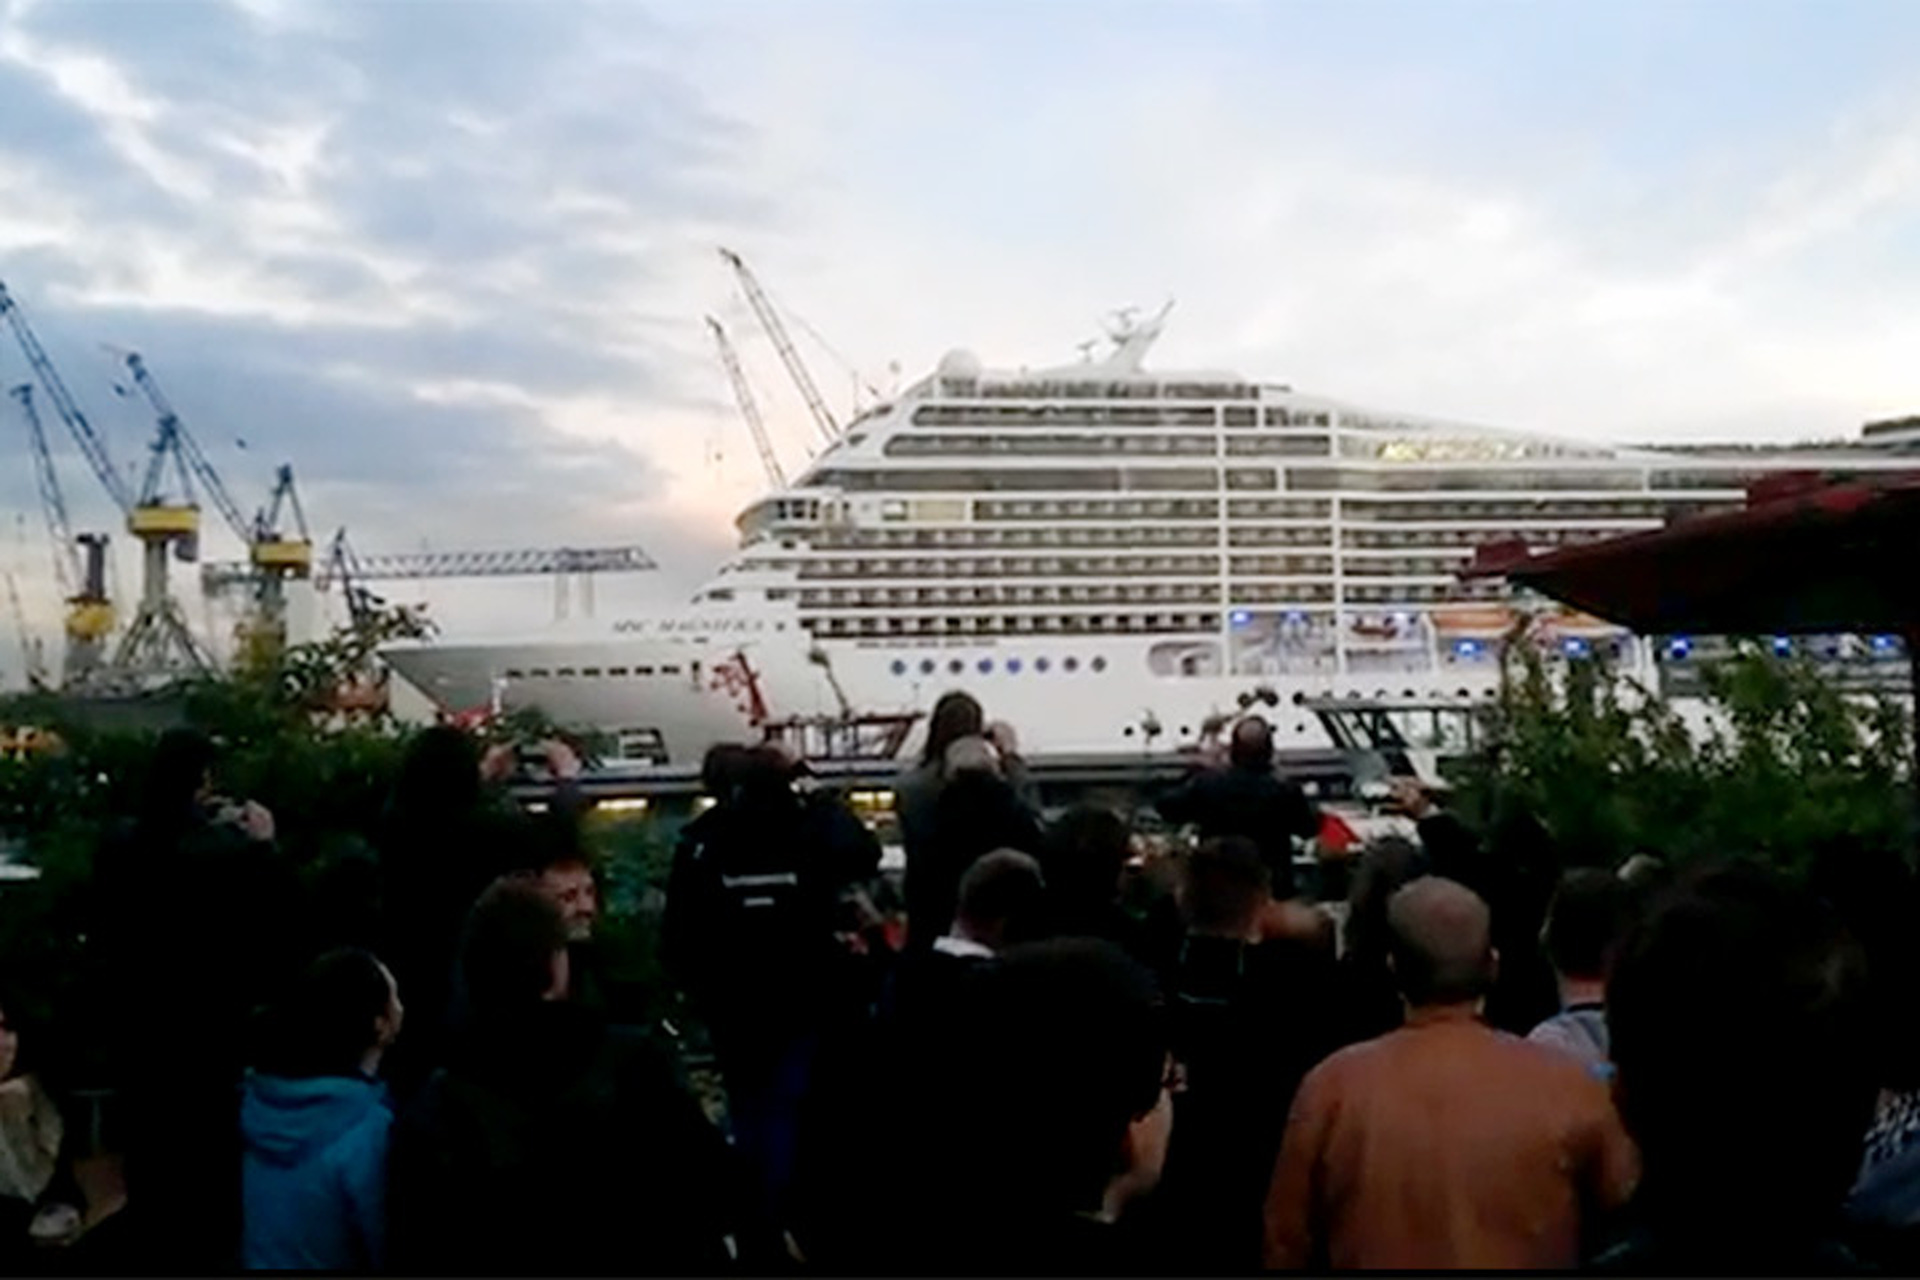 Watch A Cruise Ship Belt Out 'Seven Nation Army' [video]